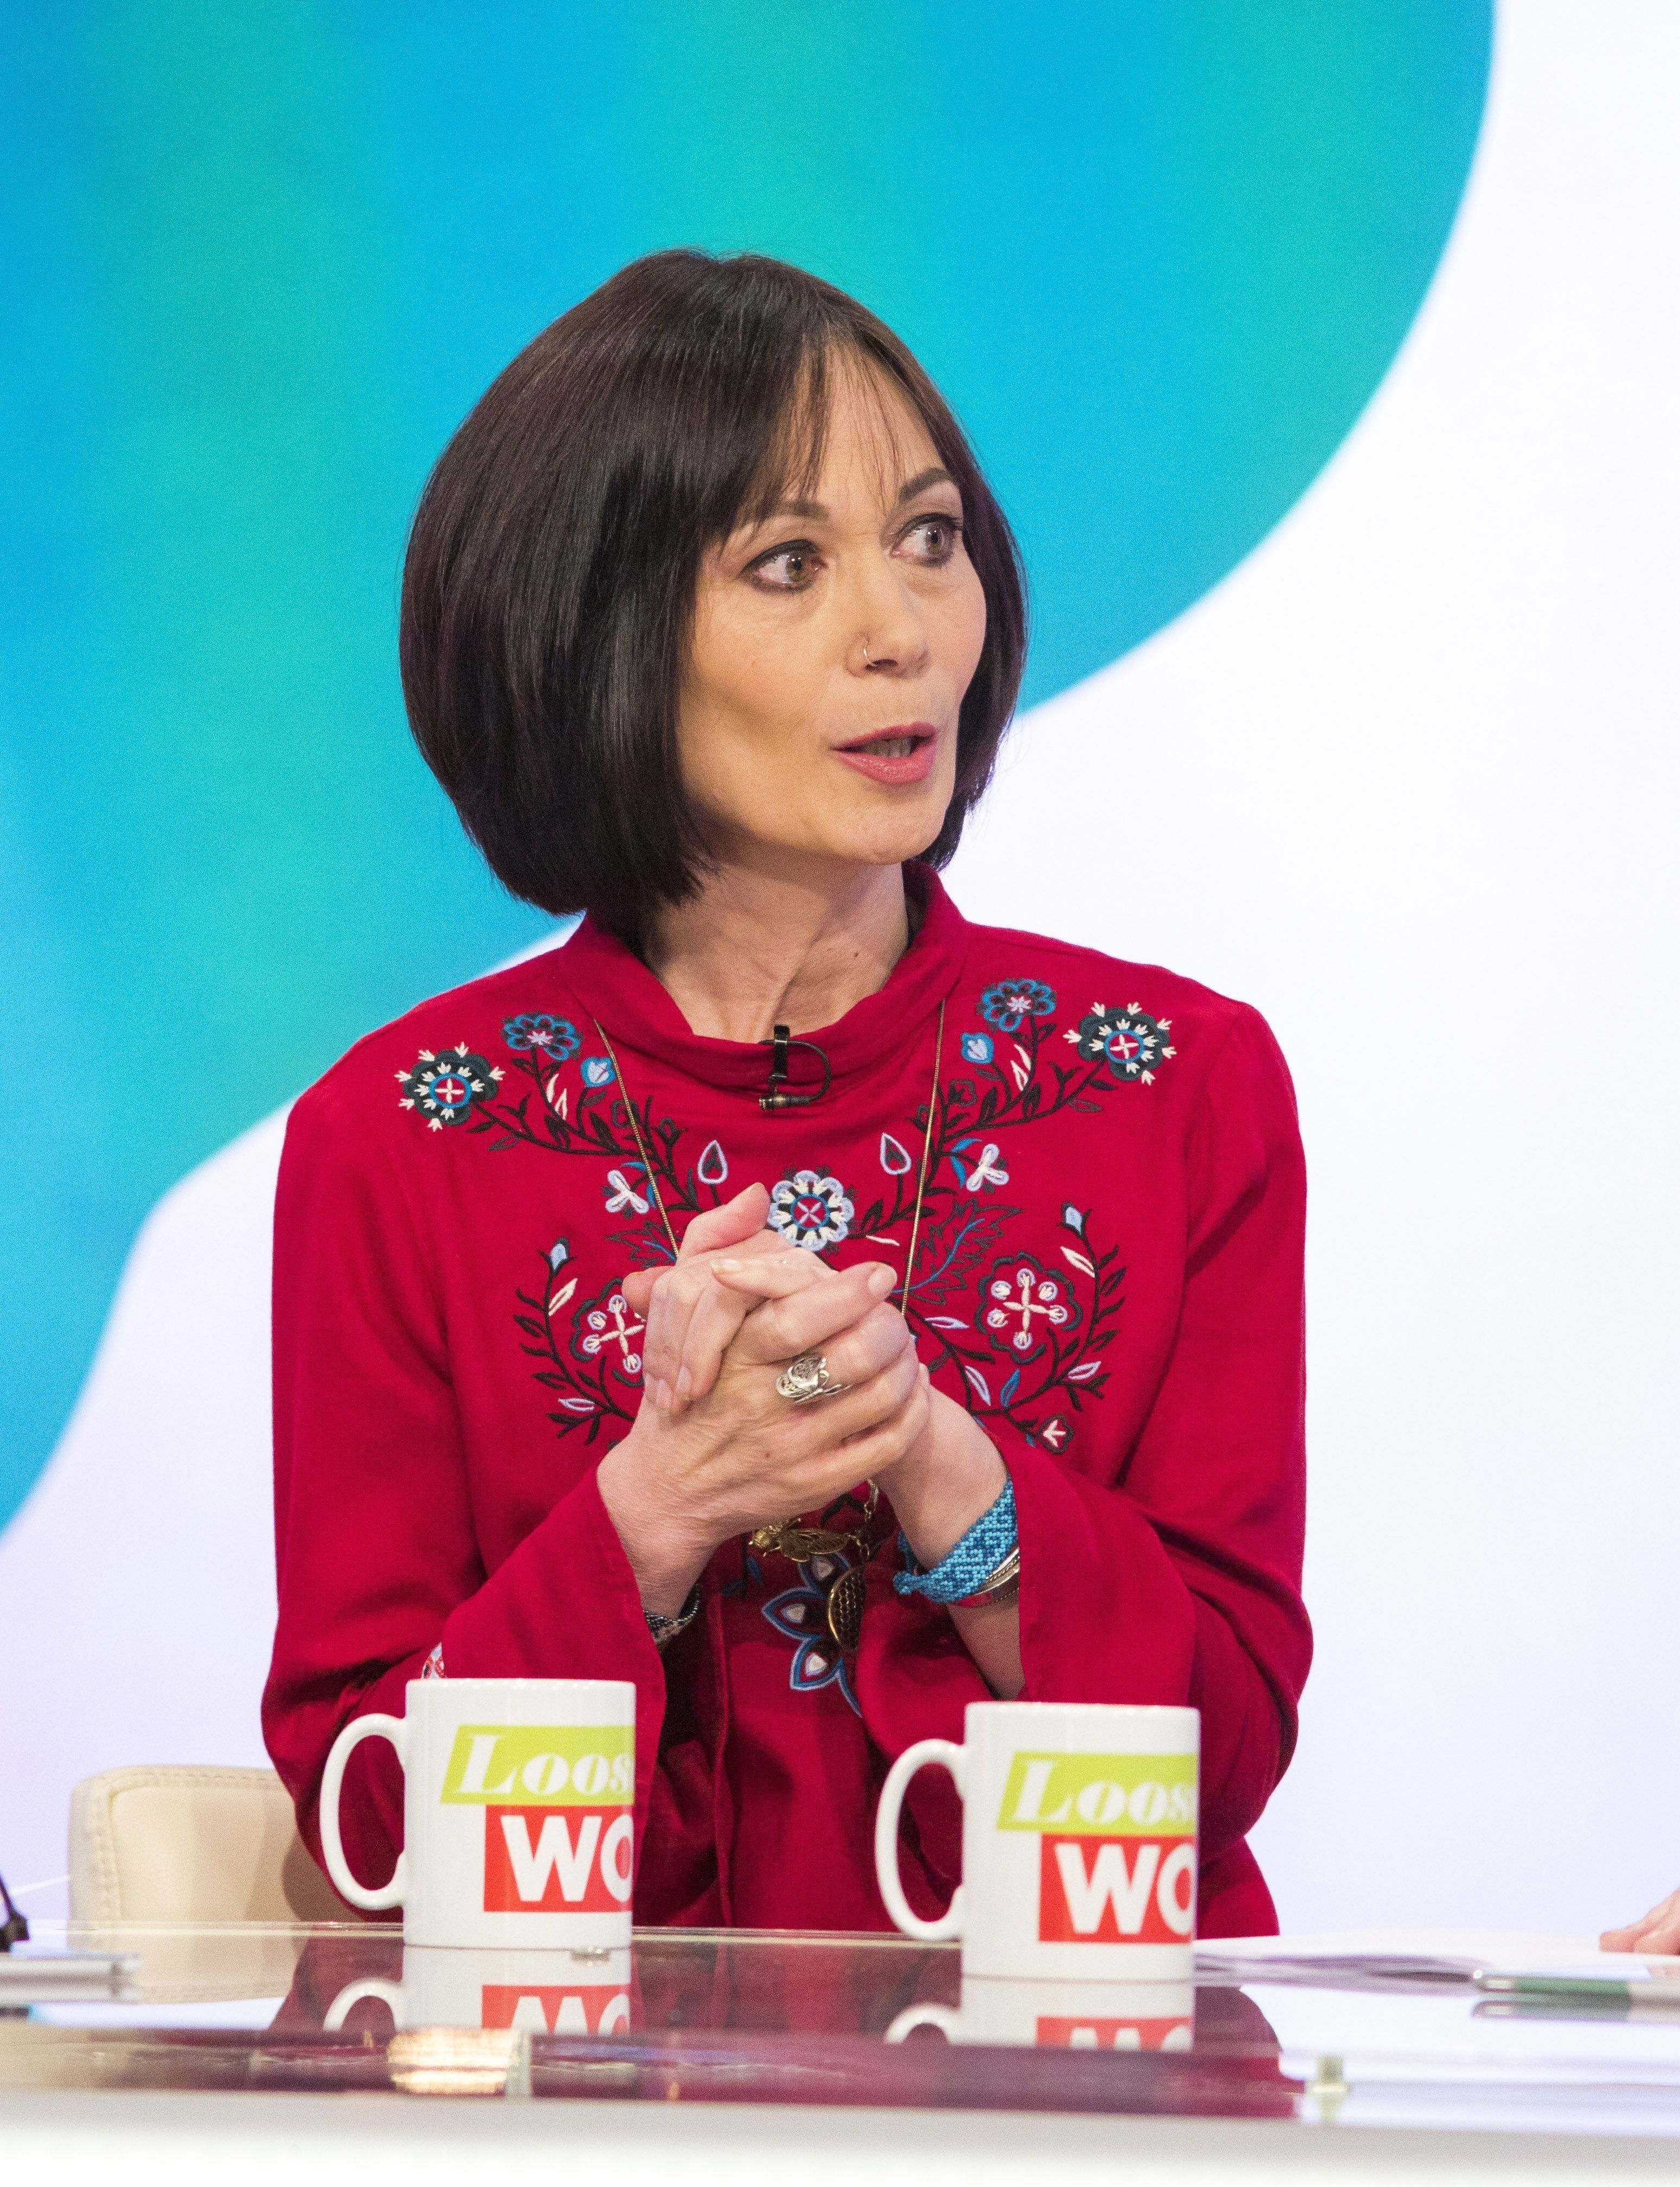 Leah Bracknell's Partner Reveals Star's Cancer Drug Has Stopped Working, As She Pursues Alternative